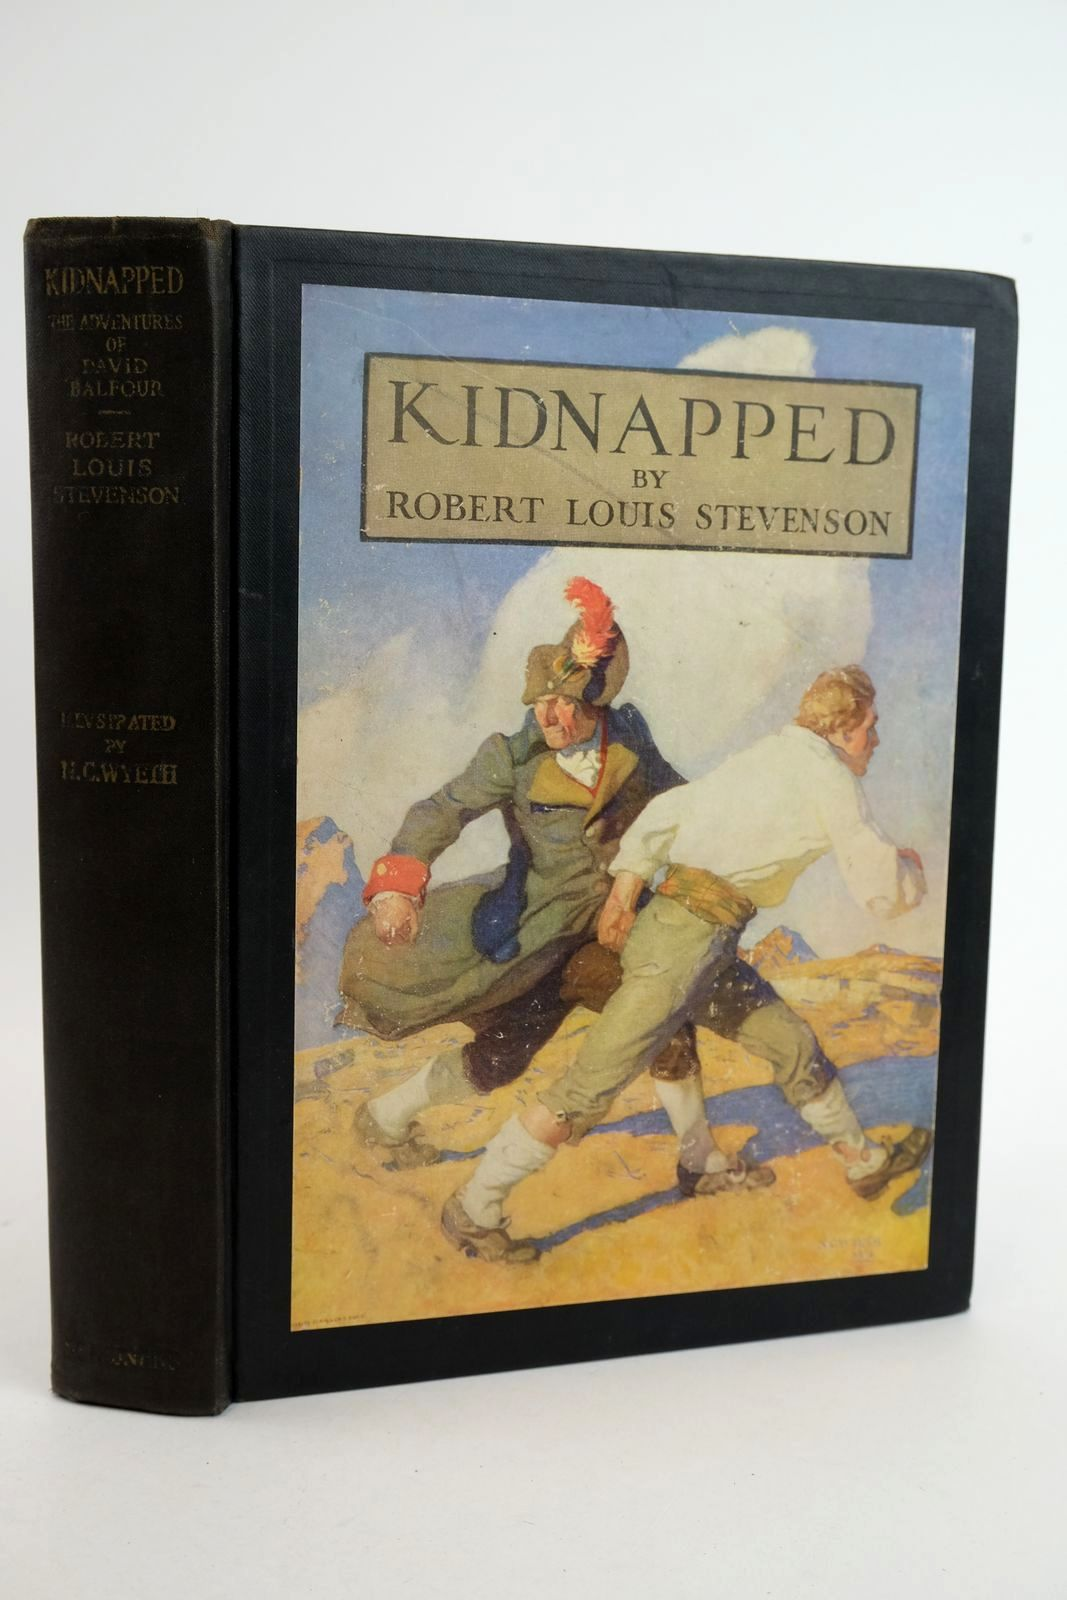 Photo of KIDNAPPED written by Stevenson, Robert Louis illustrated by Wyeth, N.C. published by Charles Scribner's Sons (STOCK CODE: 1318890)  for sale by Stella & Rose's Books